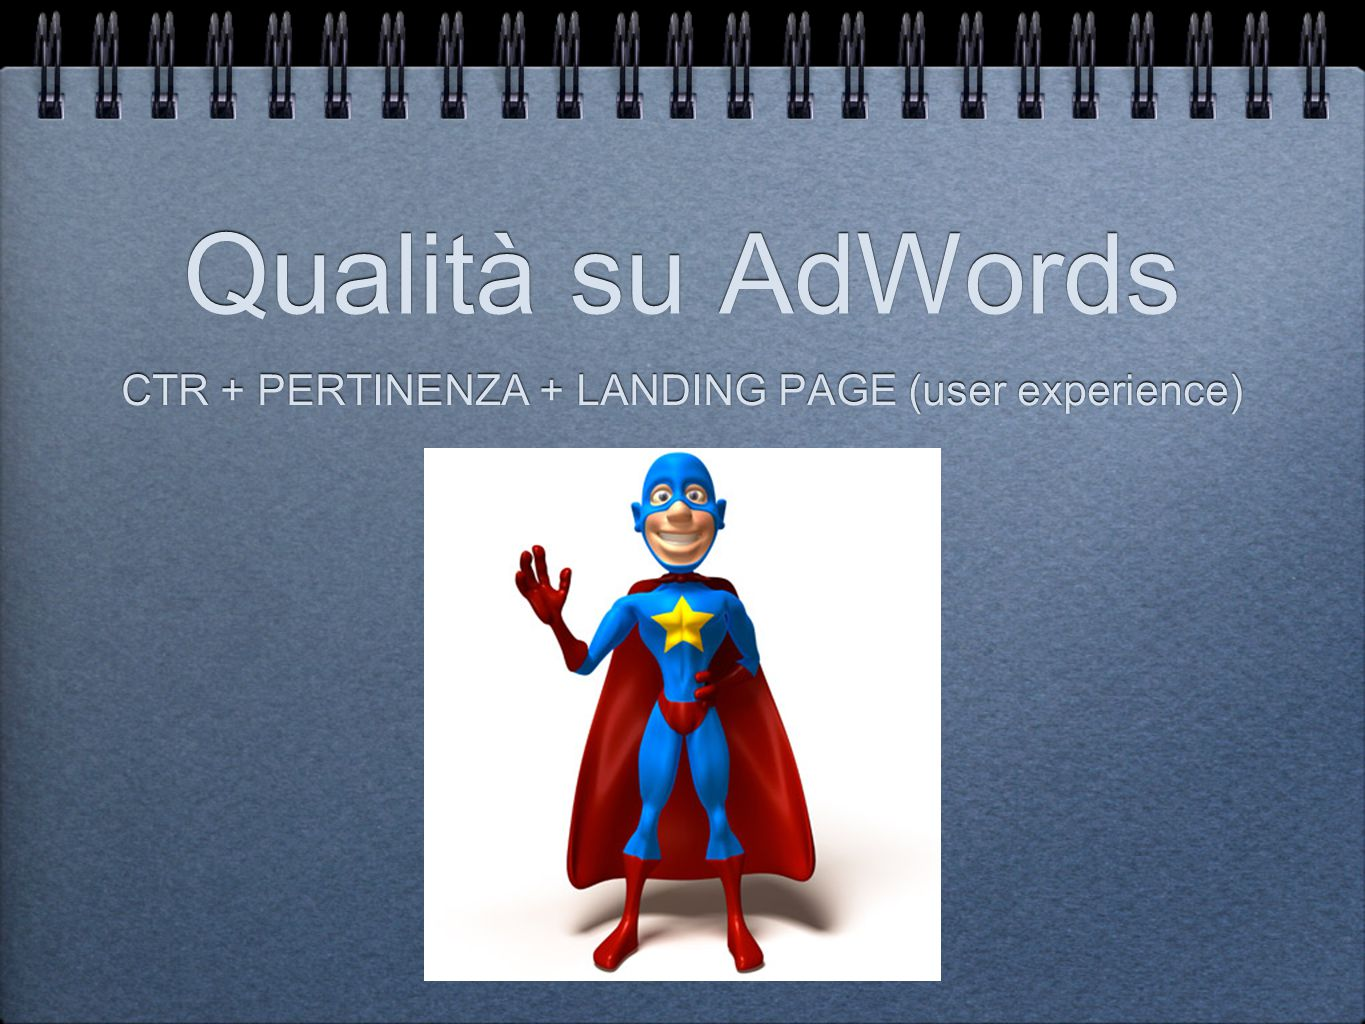 Qualità su AdWords CTR + PERTINENZA + LANDING PAGE (user experience)